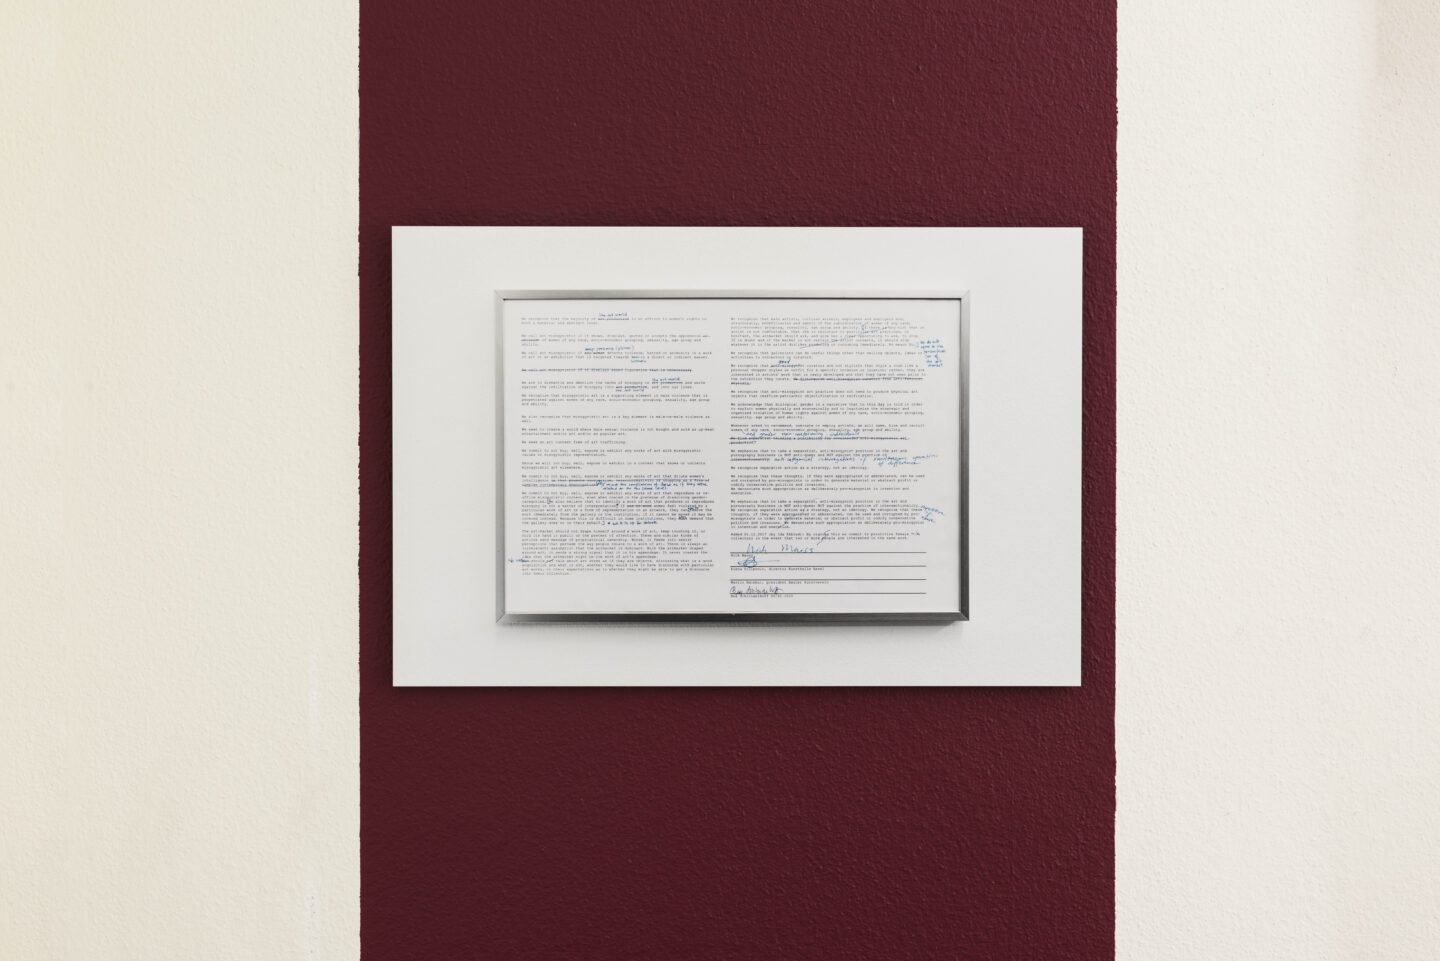 Exhibition View Bea Schlingelhoff Soloshow «soft mime win; view on softmimewin III (Basel, Kunsthalle Basel), 2020, documentation photo by Philipp Hänger, print on aluminum, 60x40 cm, cardinal wall paint, variable dimensions» at Cherish, Geneva, 2020 / Photo: James Bantone / Courtesy: the artist and Cherish